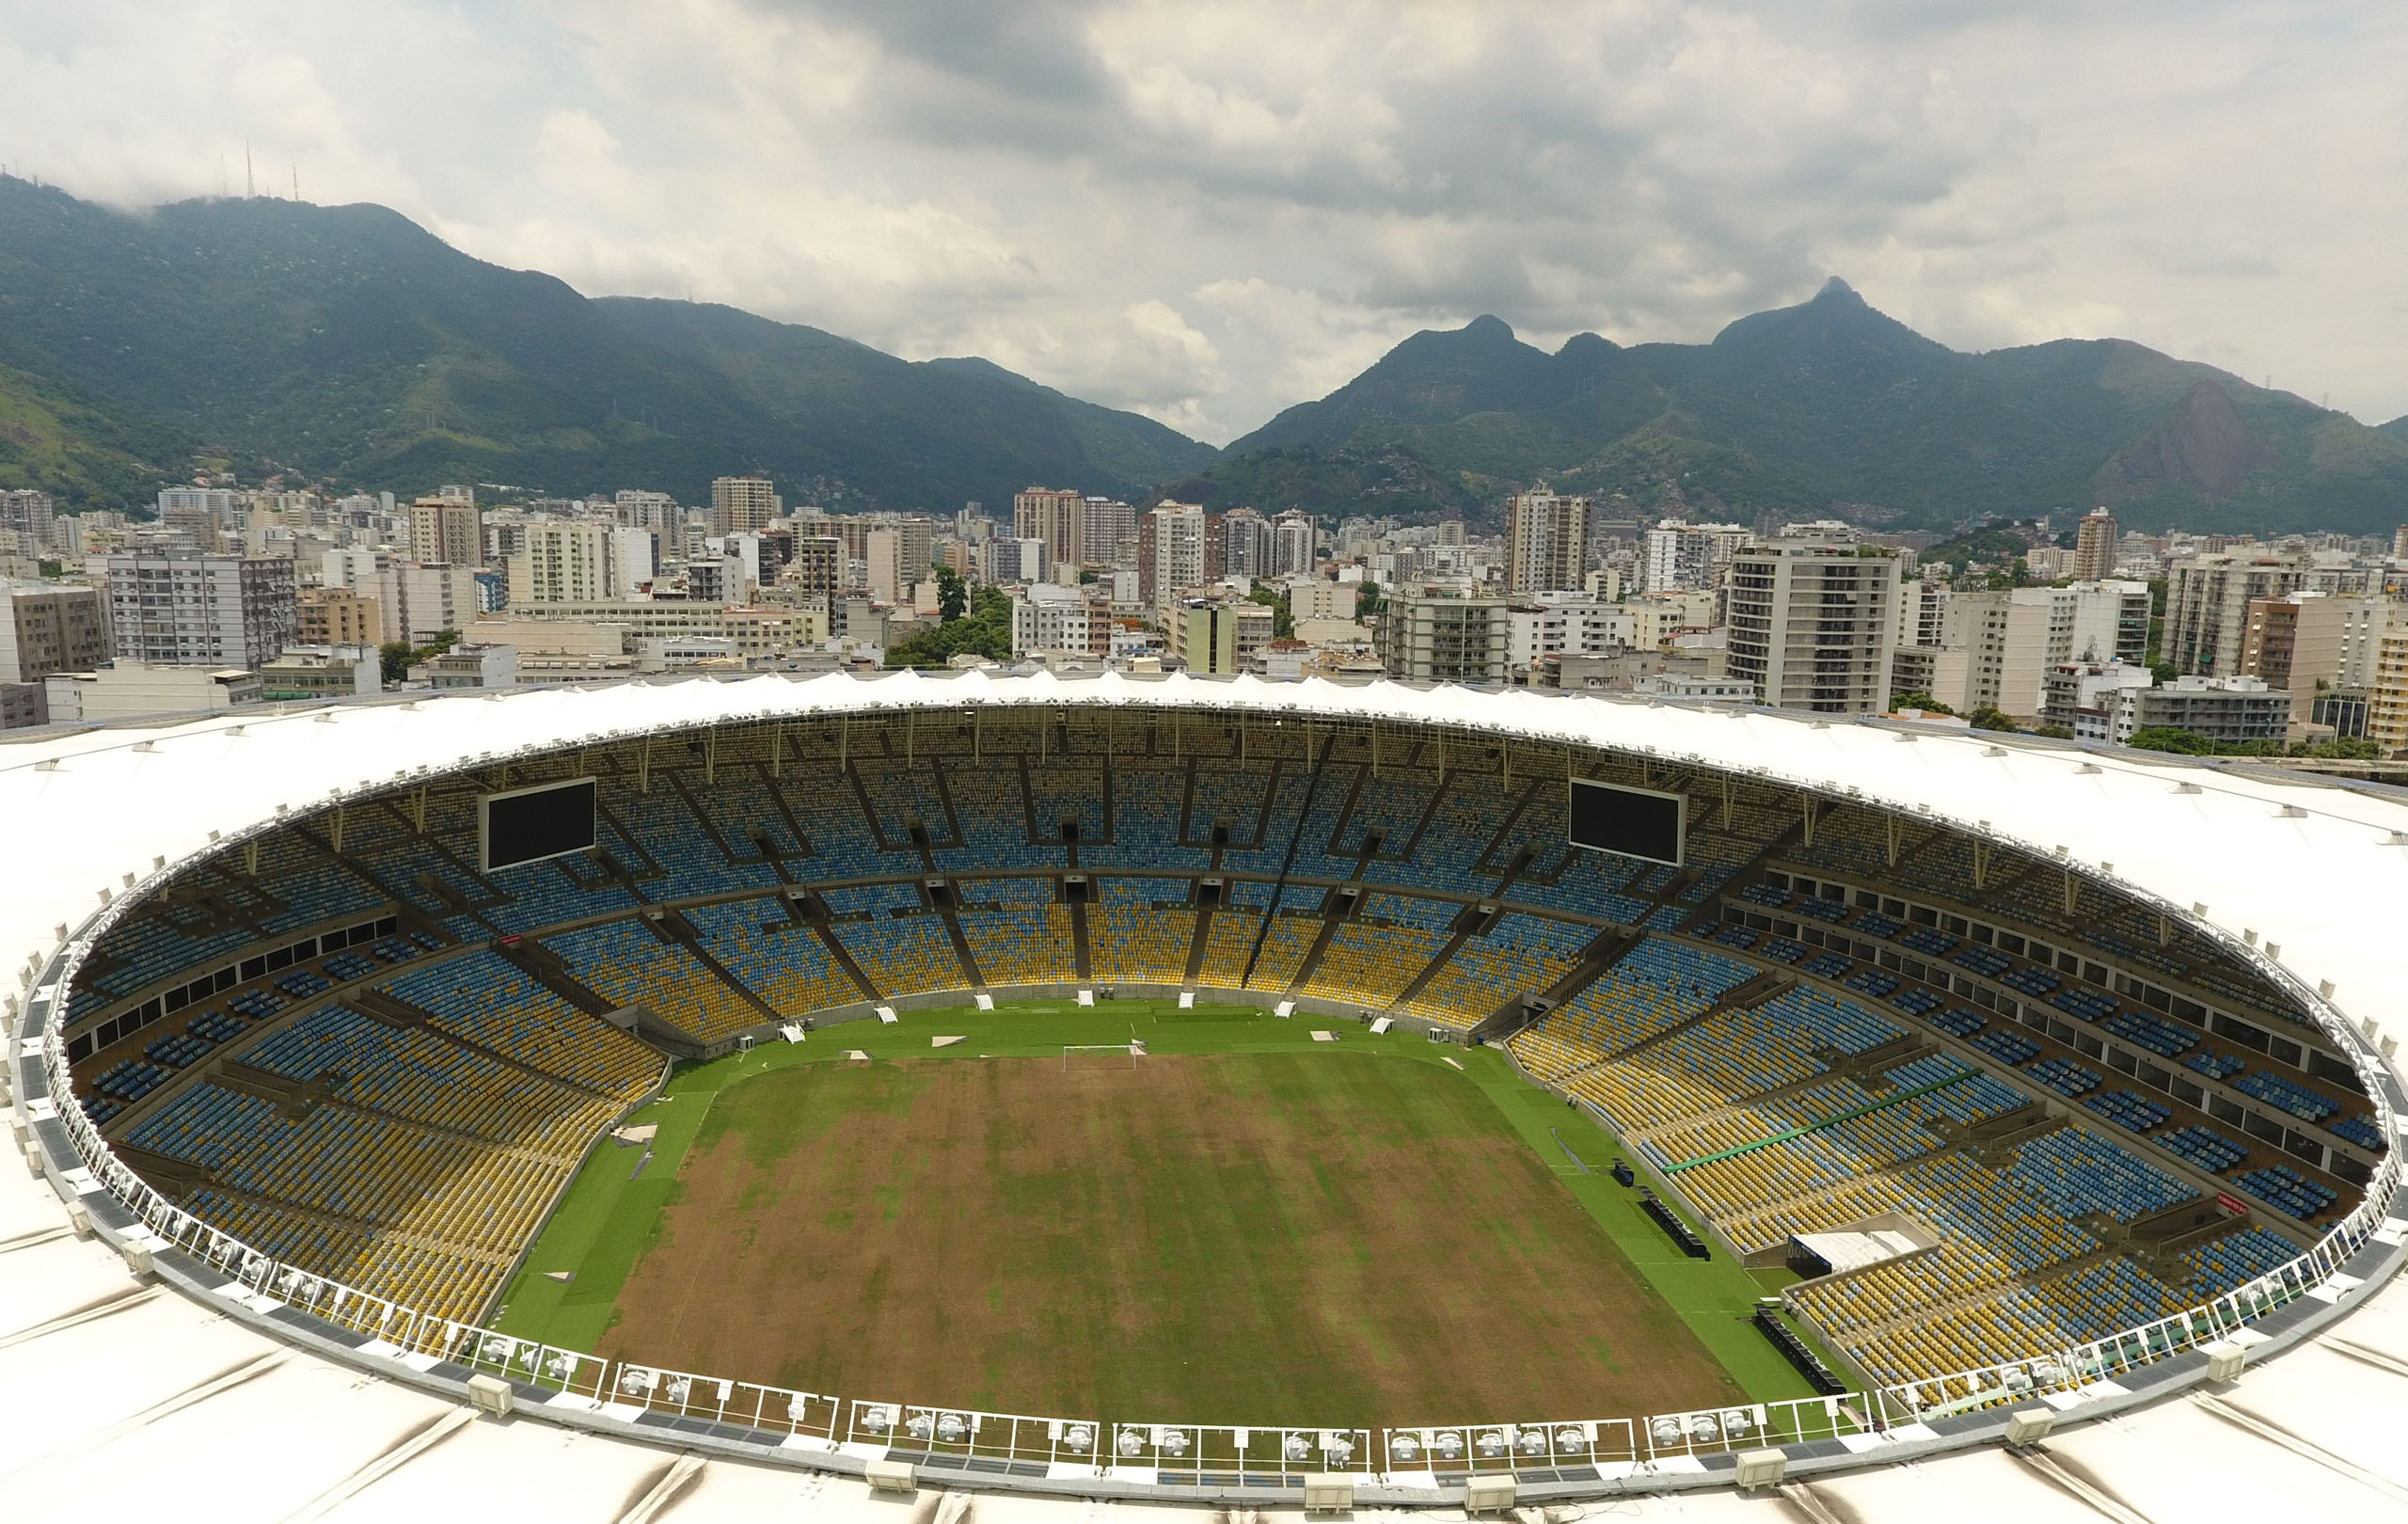 View of the world-famous Maracana Stadium in Rio de Janeiro on Jan.18, 2017.